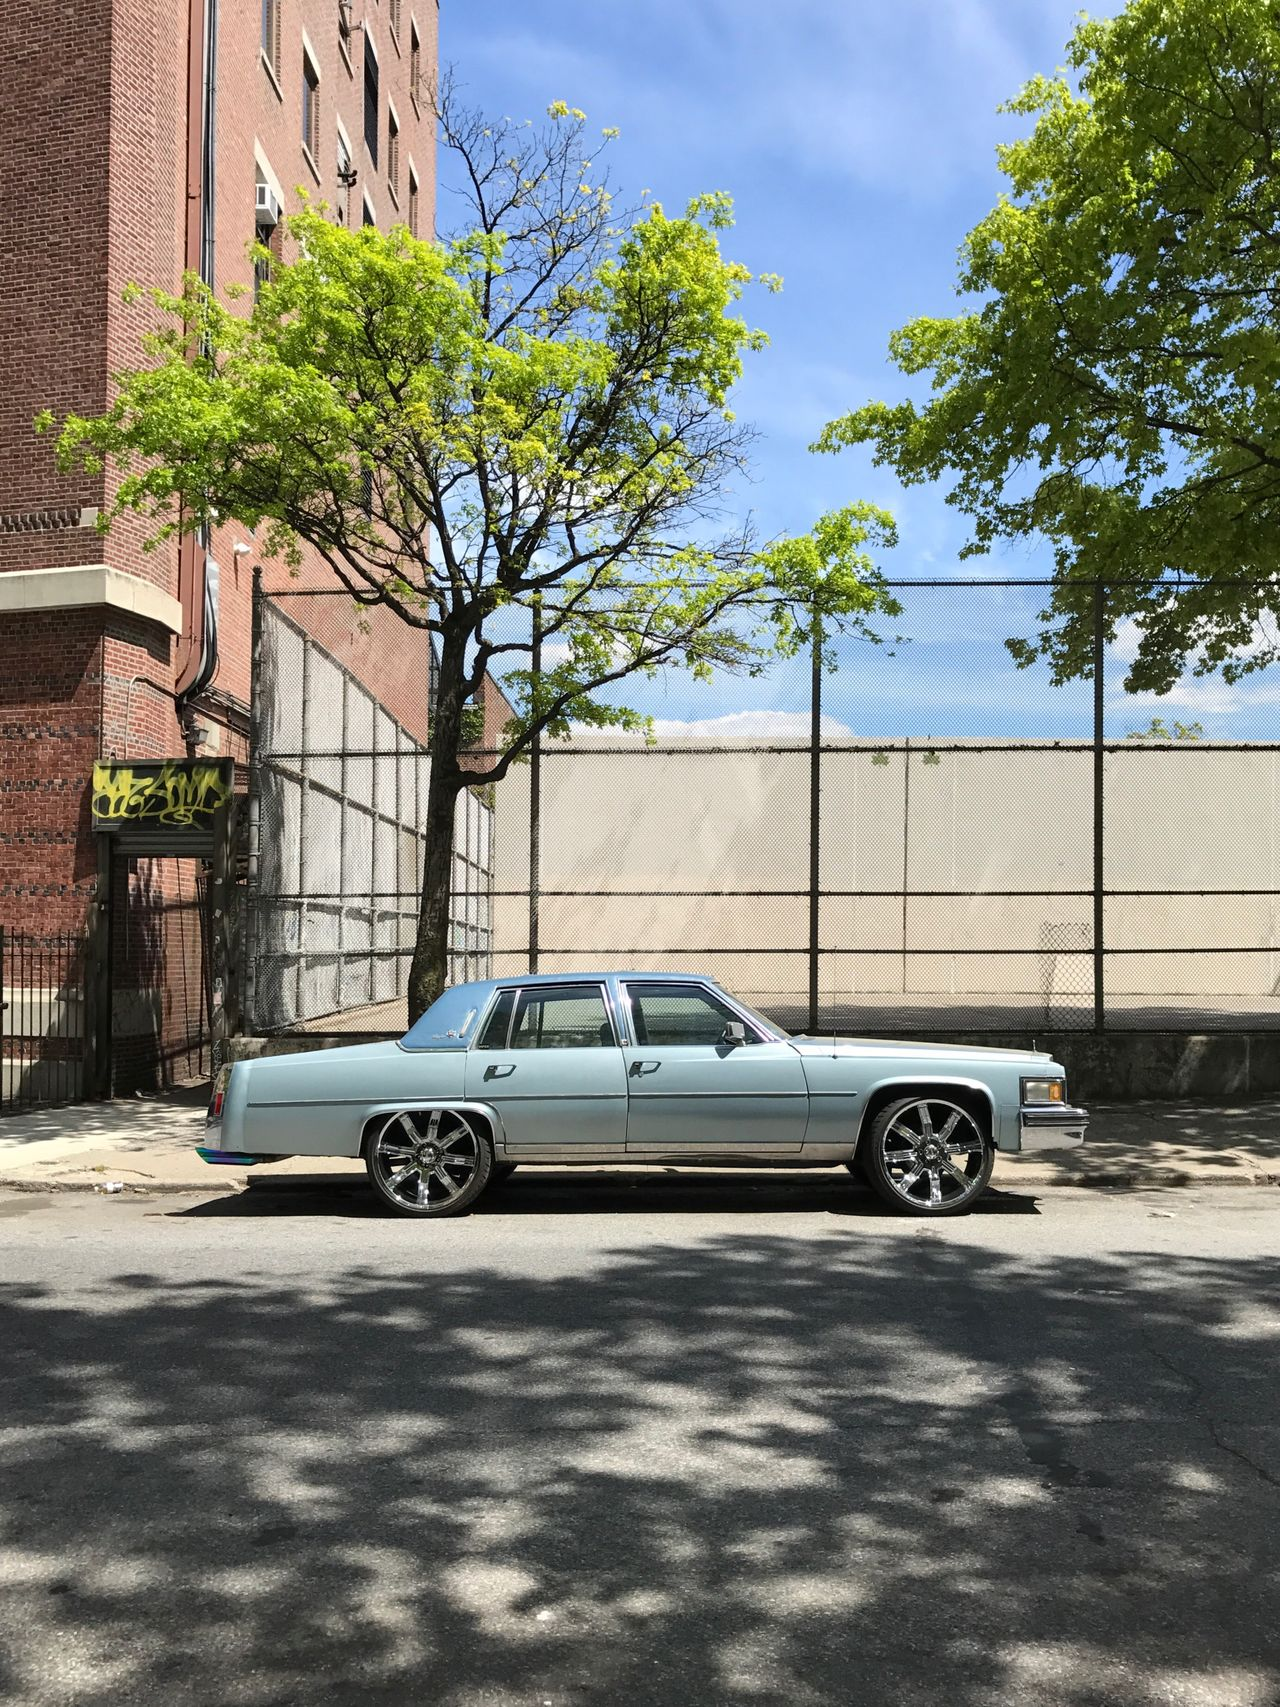 Car Transportation Architecture Built Structure Building Exterior Mode Of Transport Tree Day No People Stationary Sky Outdoors City Streetphotography Minimalistic Minimalism Aesthetic Aesthetics New York Pimp Wheels Chrome Car Tuning Brooklyn Vintage The Street Photographer - 2017 EyeEm Awards